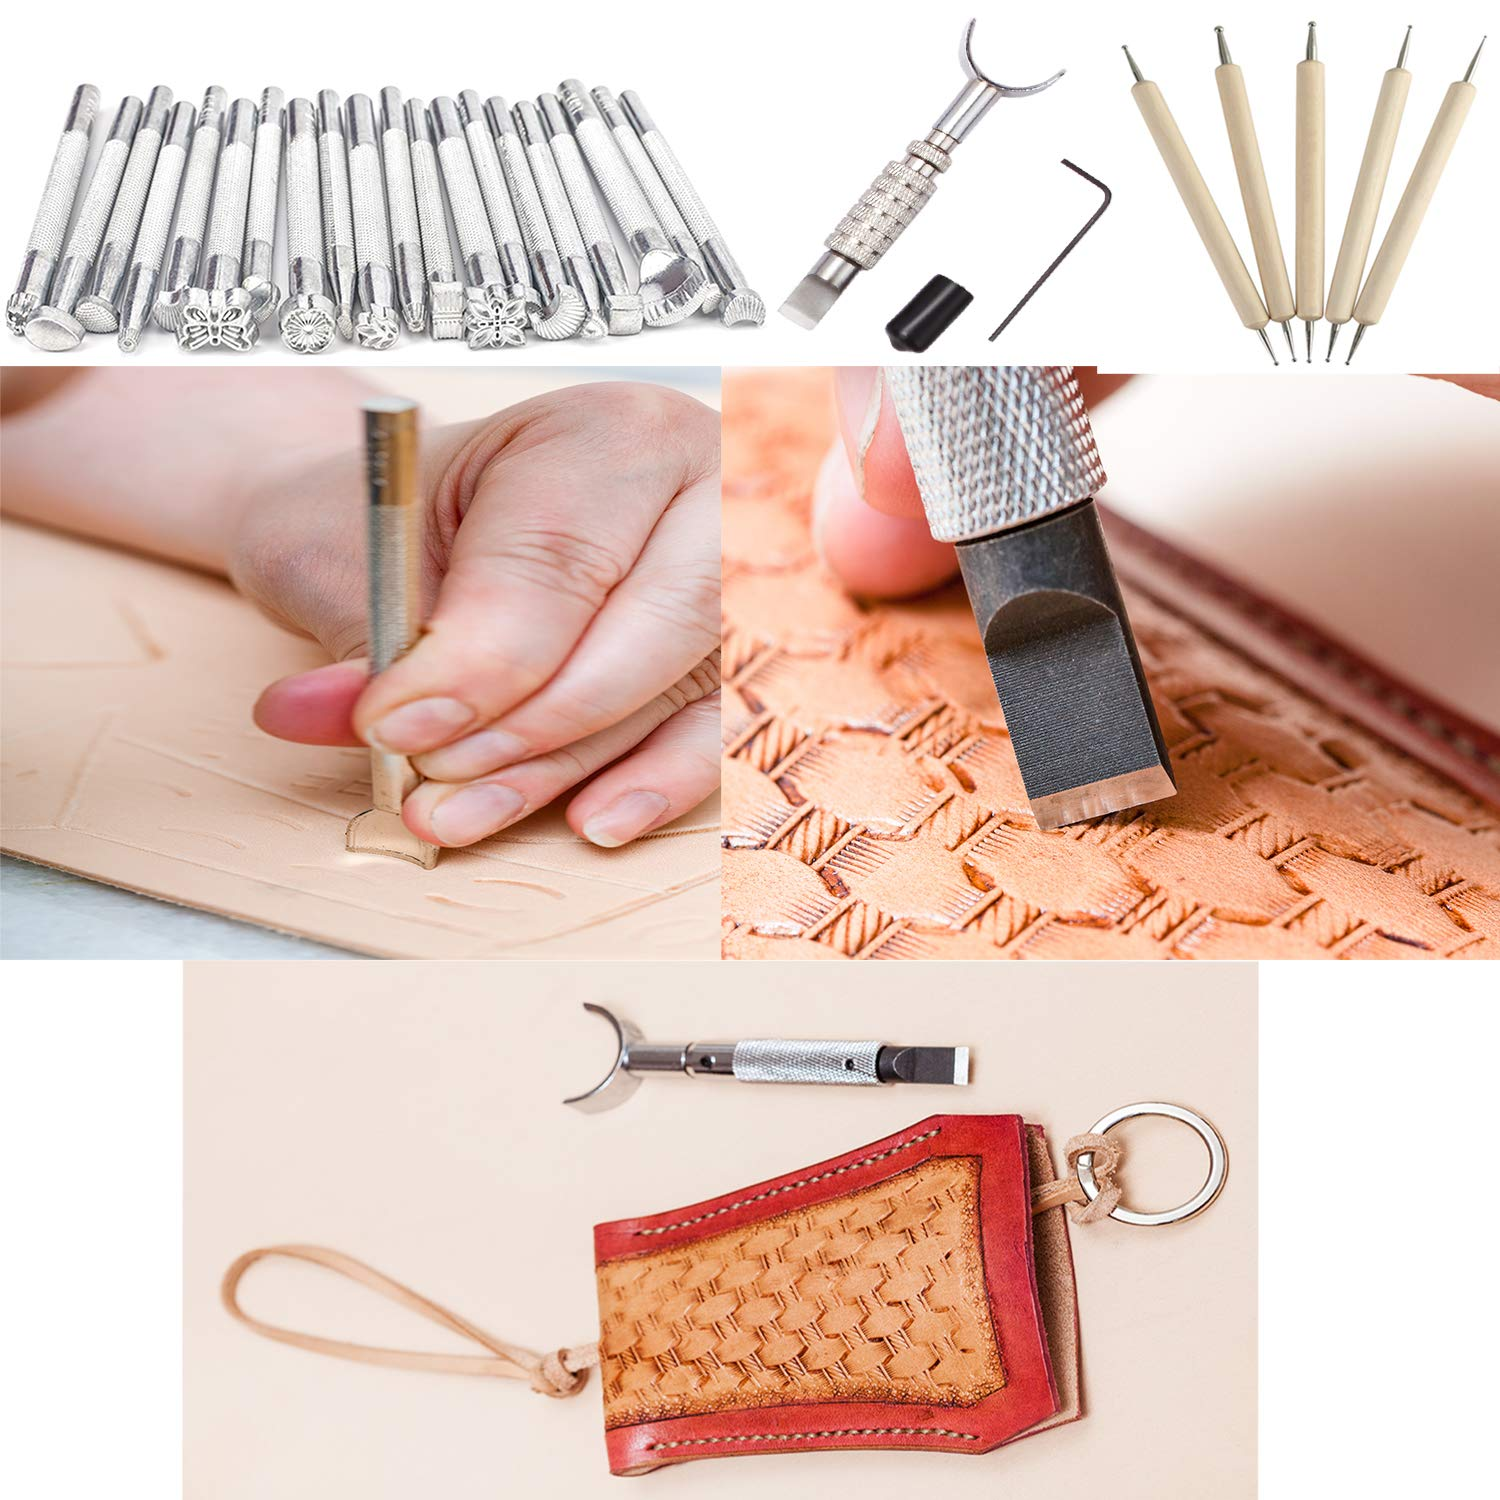 Dorhui 372 Pieces Leather Crafting Tools,Leather Tools Leather Working Tools and Supplies, Leather Craft Stamping Tool, Prong Punch, Hole Hollow Punch, Matting Cut for DIY Leather Artworks by Dorhui (Image #2)